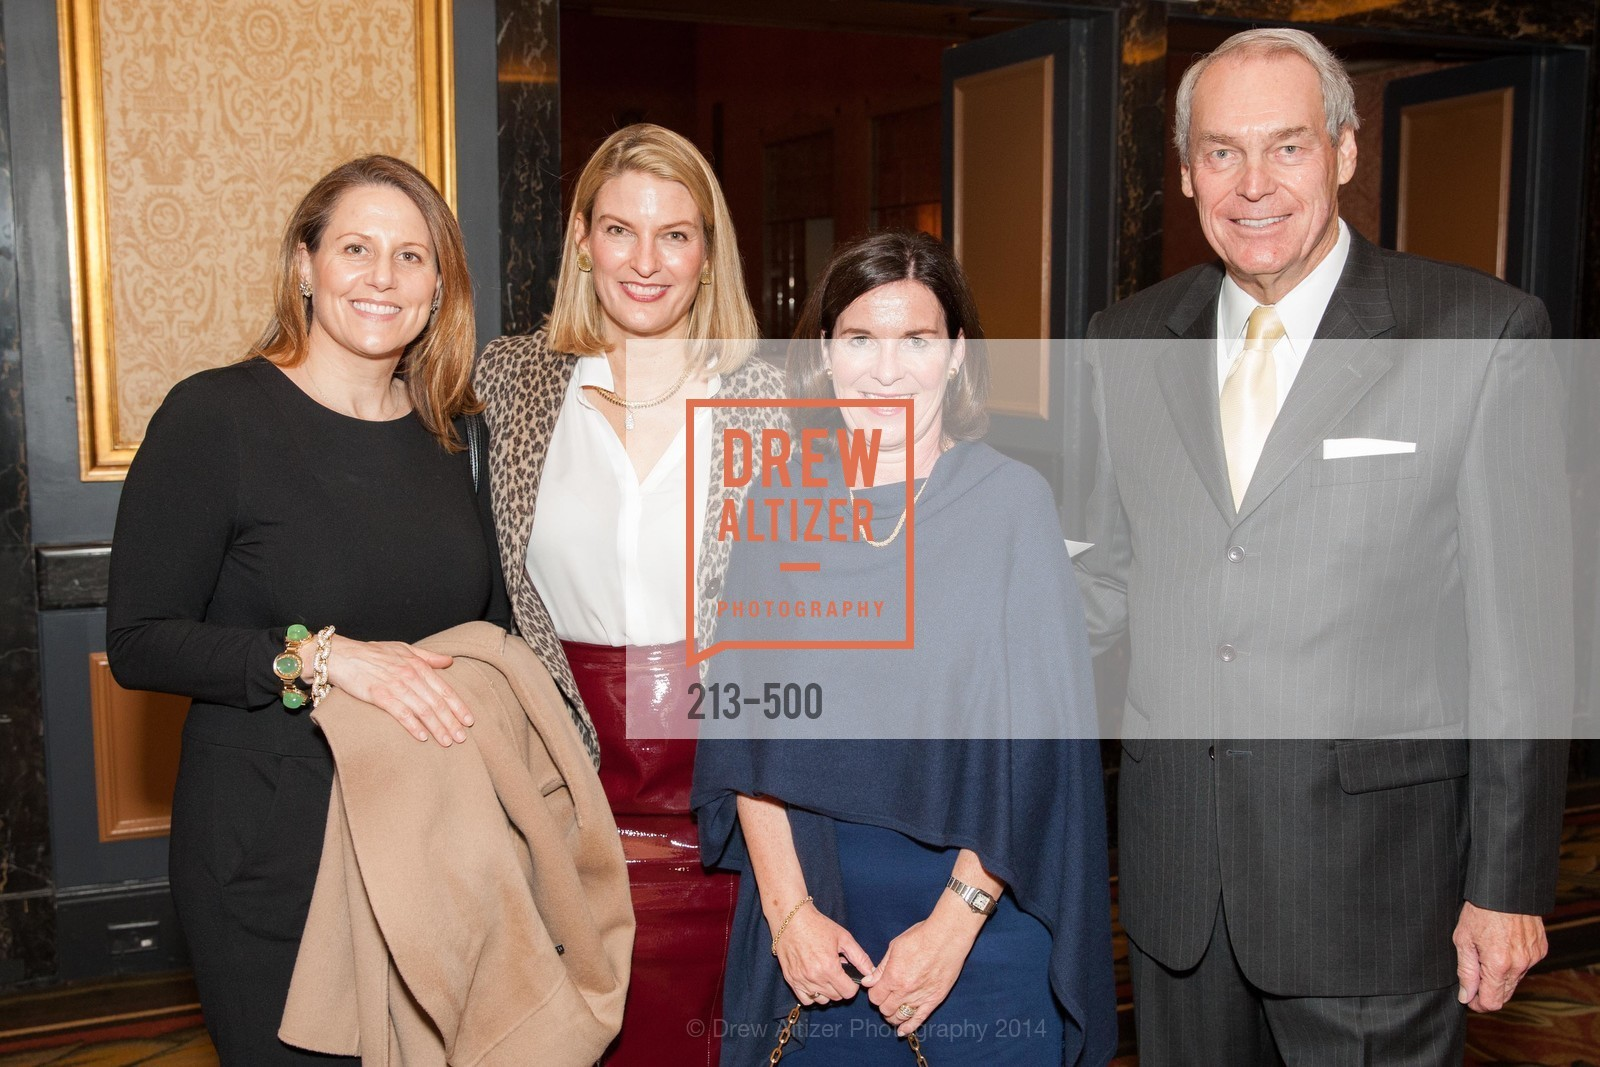 Lesley Pariani, Mindy Henderson, Jane Brior, Doug Fenton, Compassion & Choices Luncheon, US. US, April 4th, 2014,Drew Altizer, Drew Altizer Photography, full-service agency, private events, San Francisco photographer, photographer california